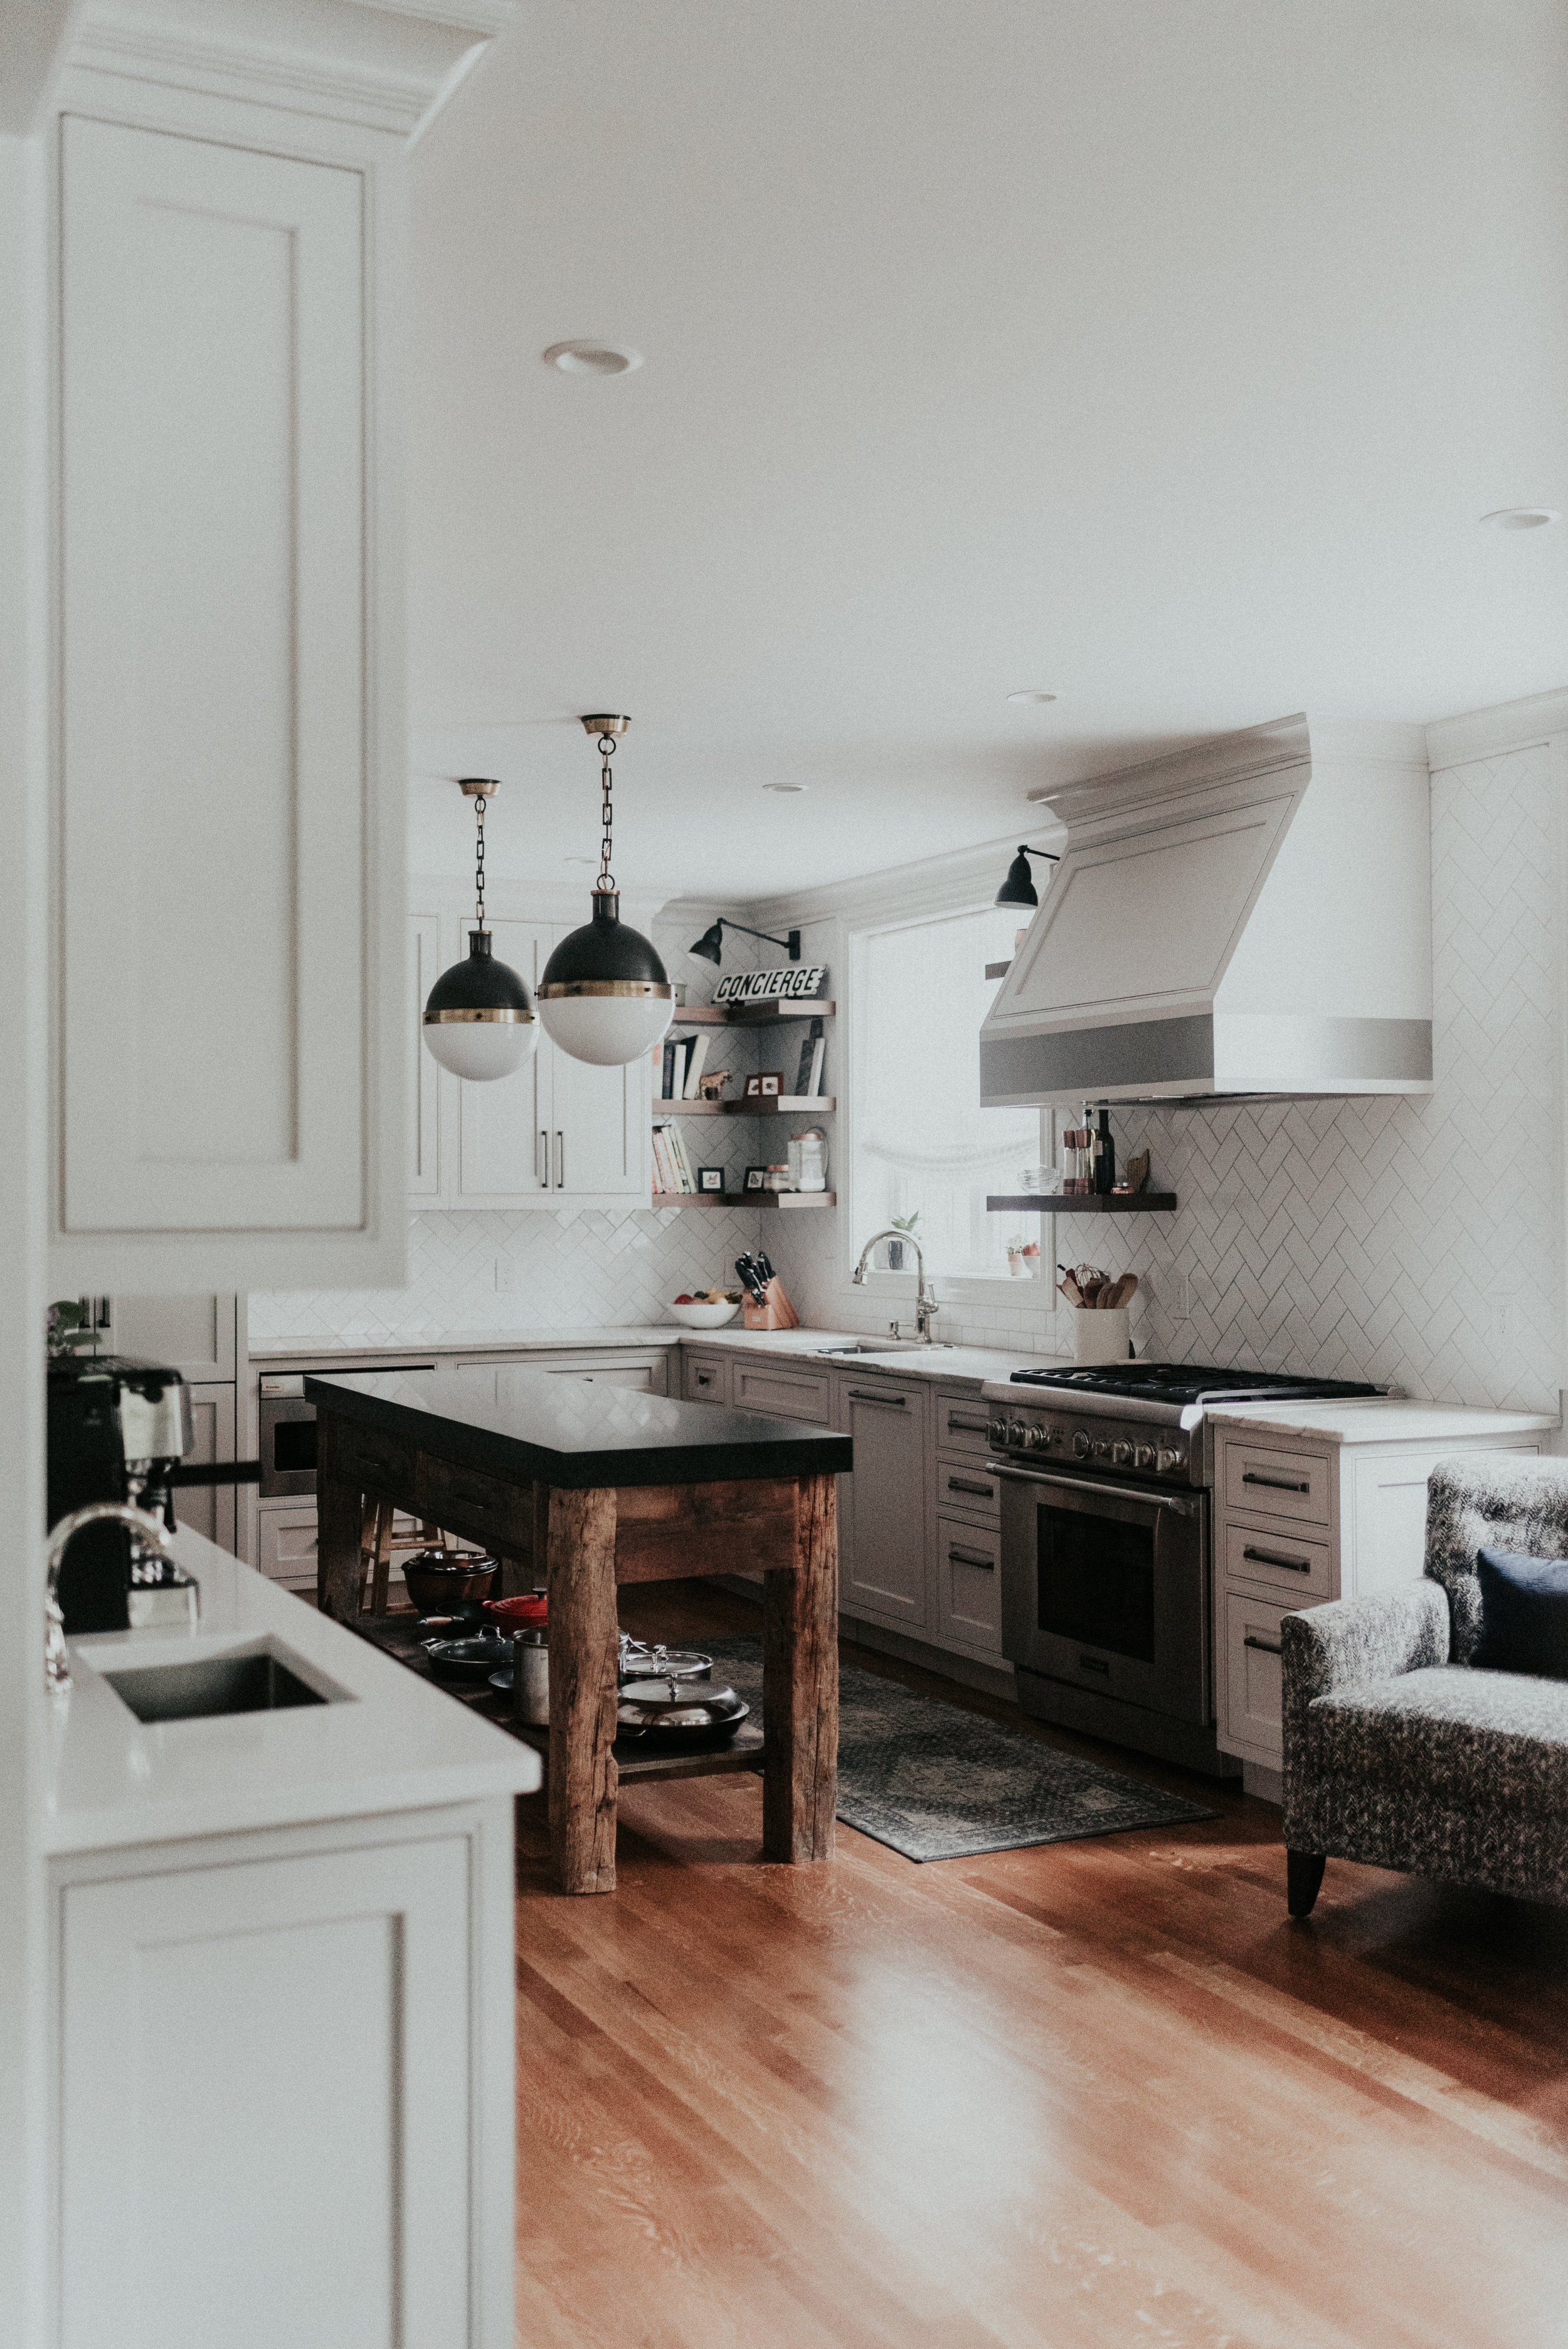 maynard residence - old welcomes new Sue long-pondered a kitchen redo for her Shaker Heights tudor. She engaged long-time friend and designer, Linda to take on the renovation.